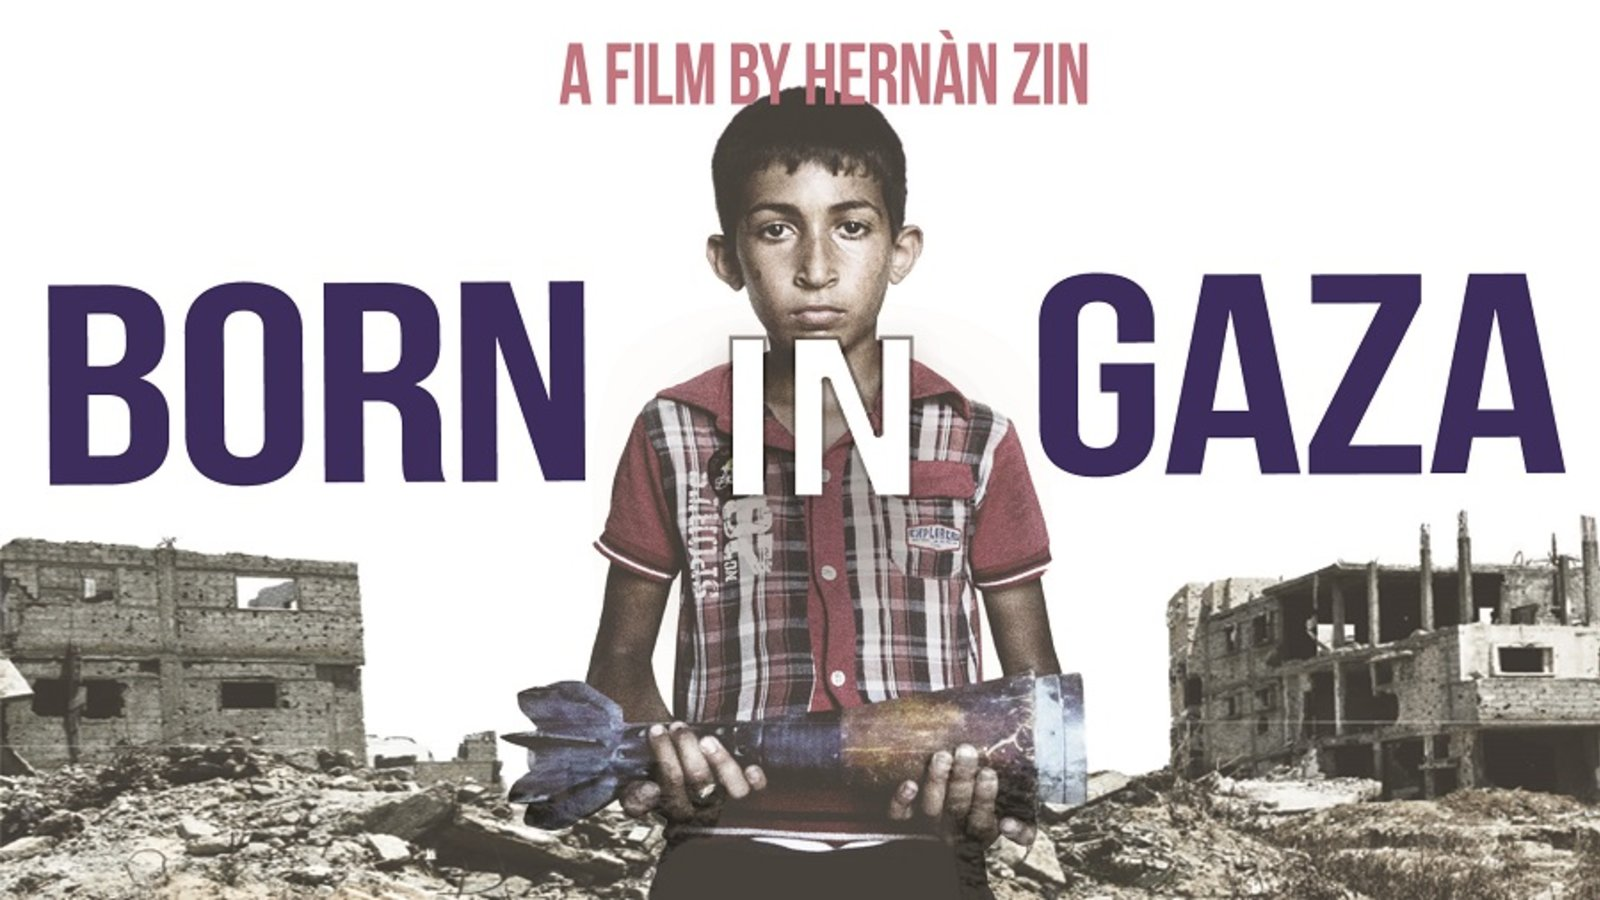 Born in Gaza - Children Affected by the 2014 Siege of Gaza